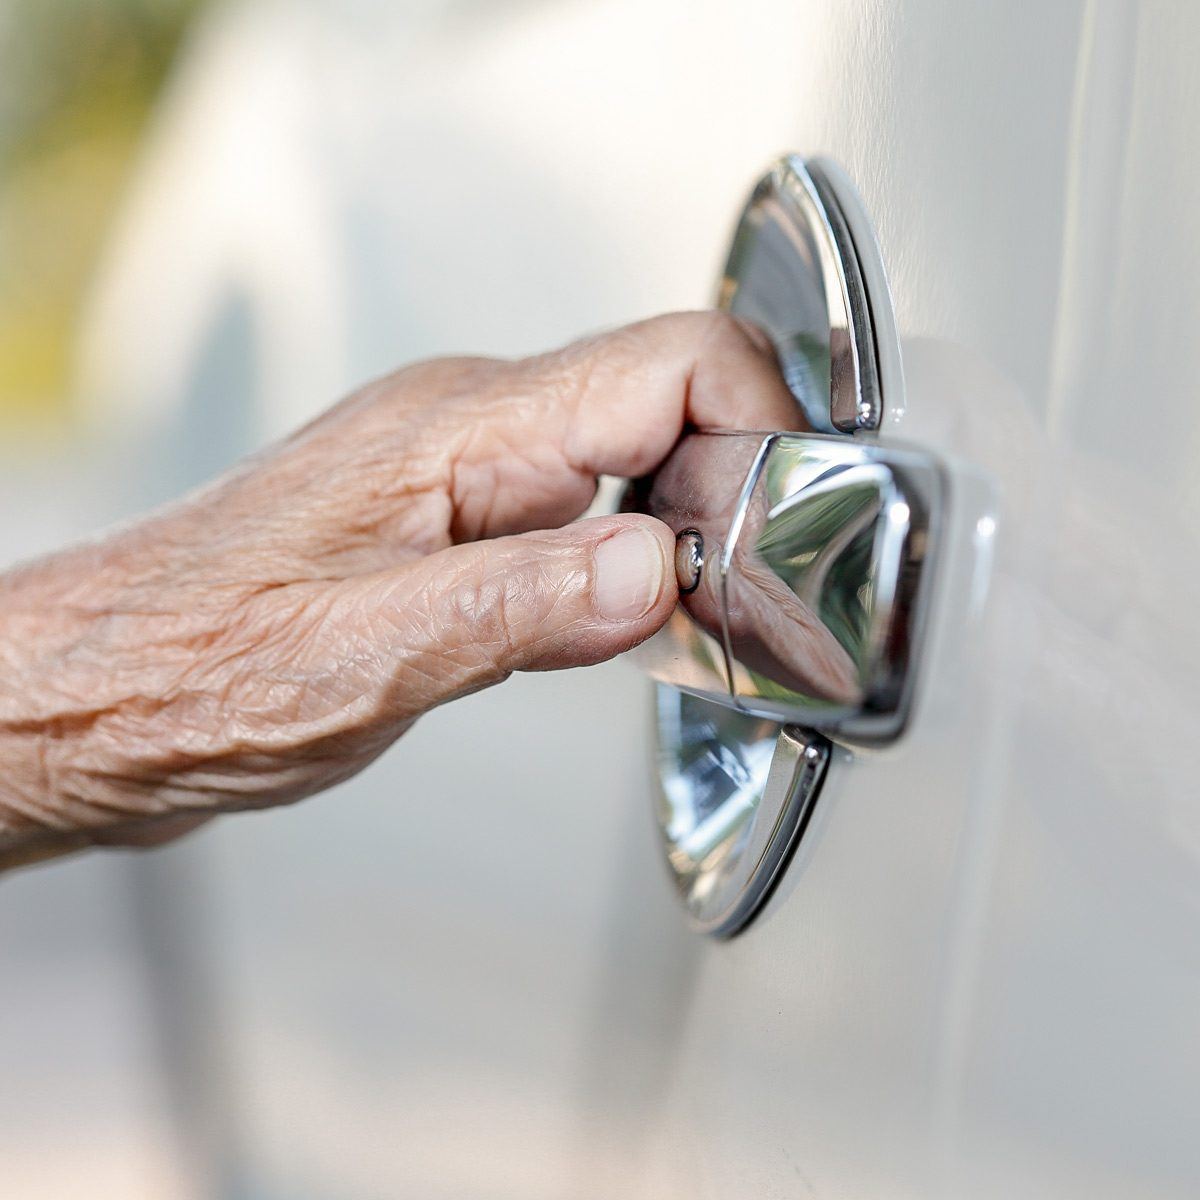 elderly woman hand opening car door